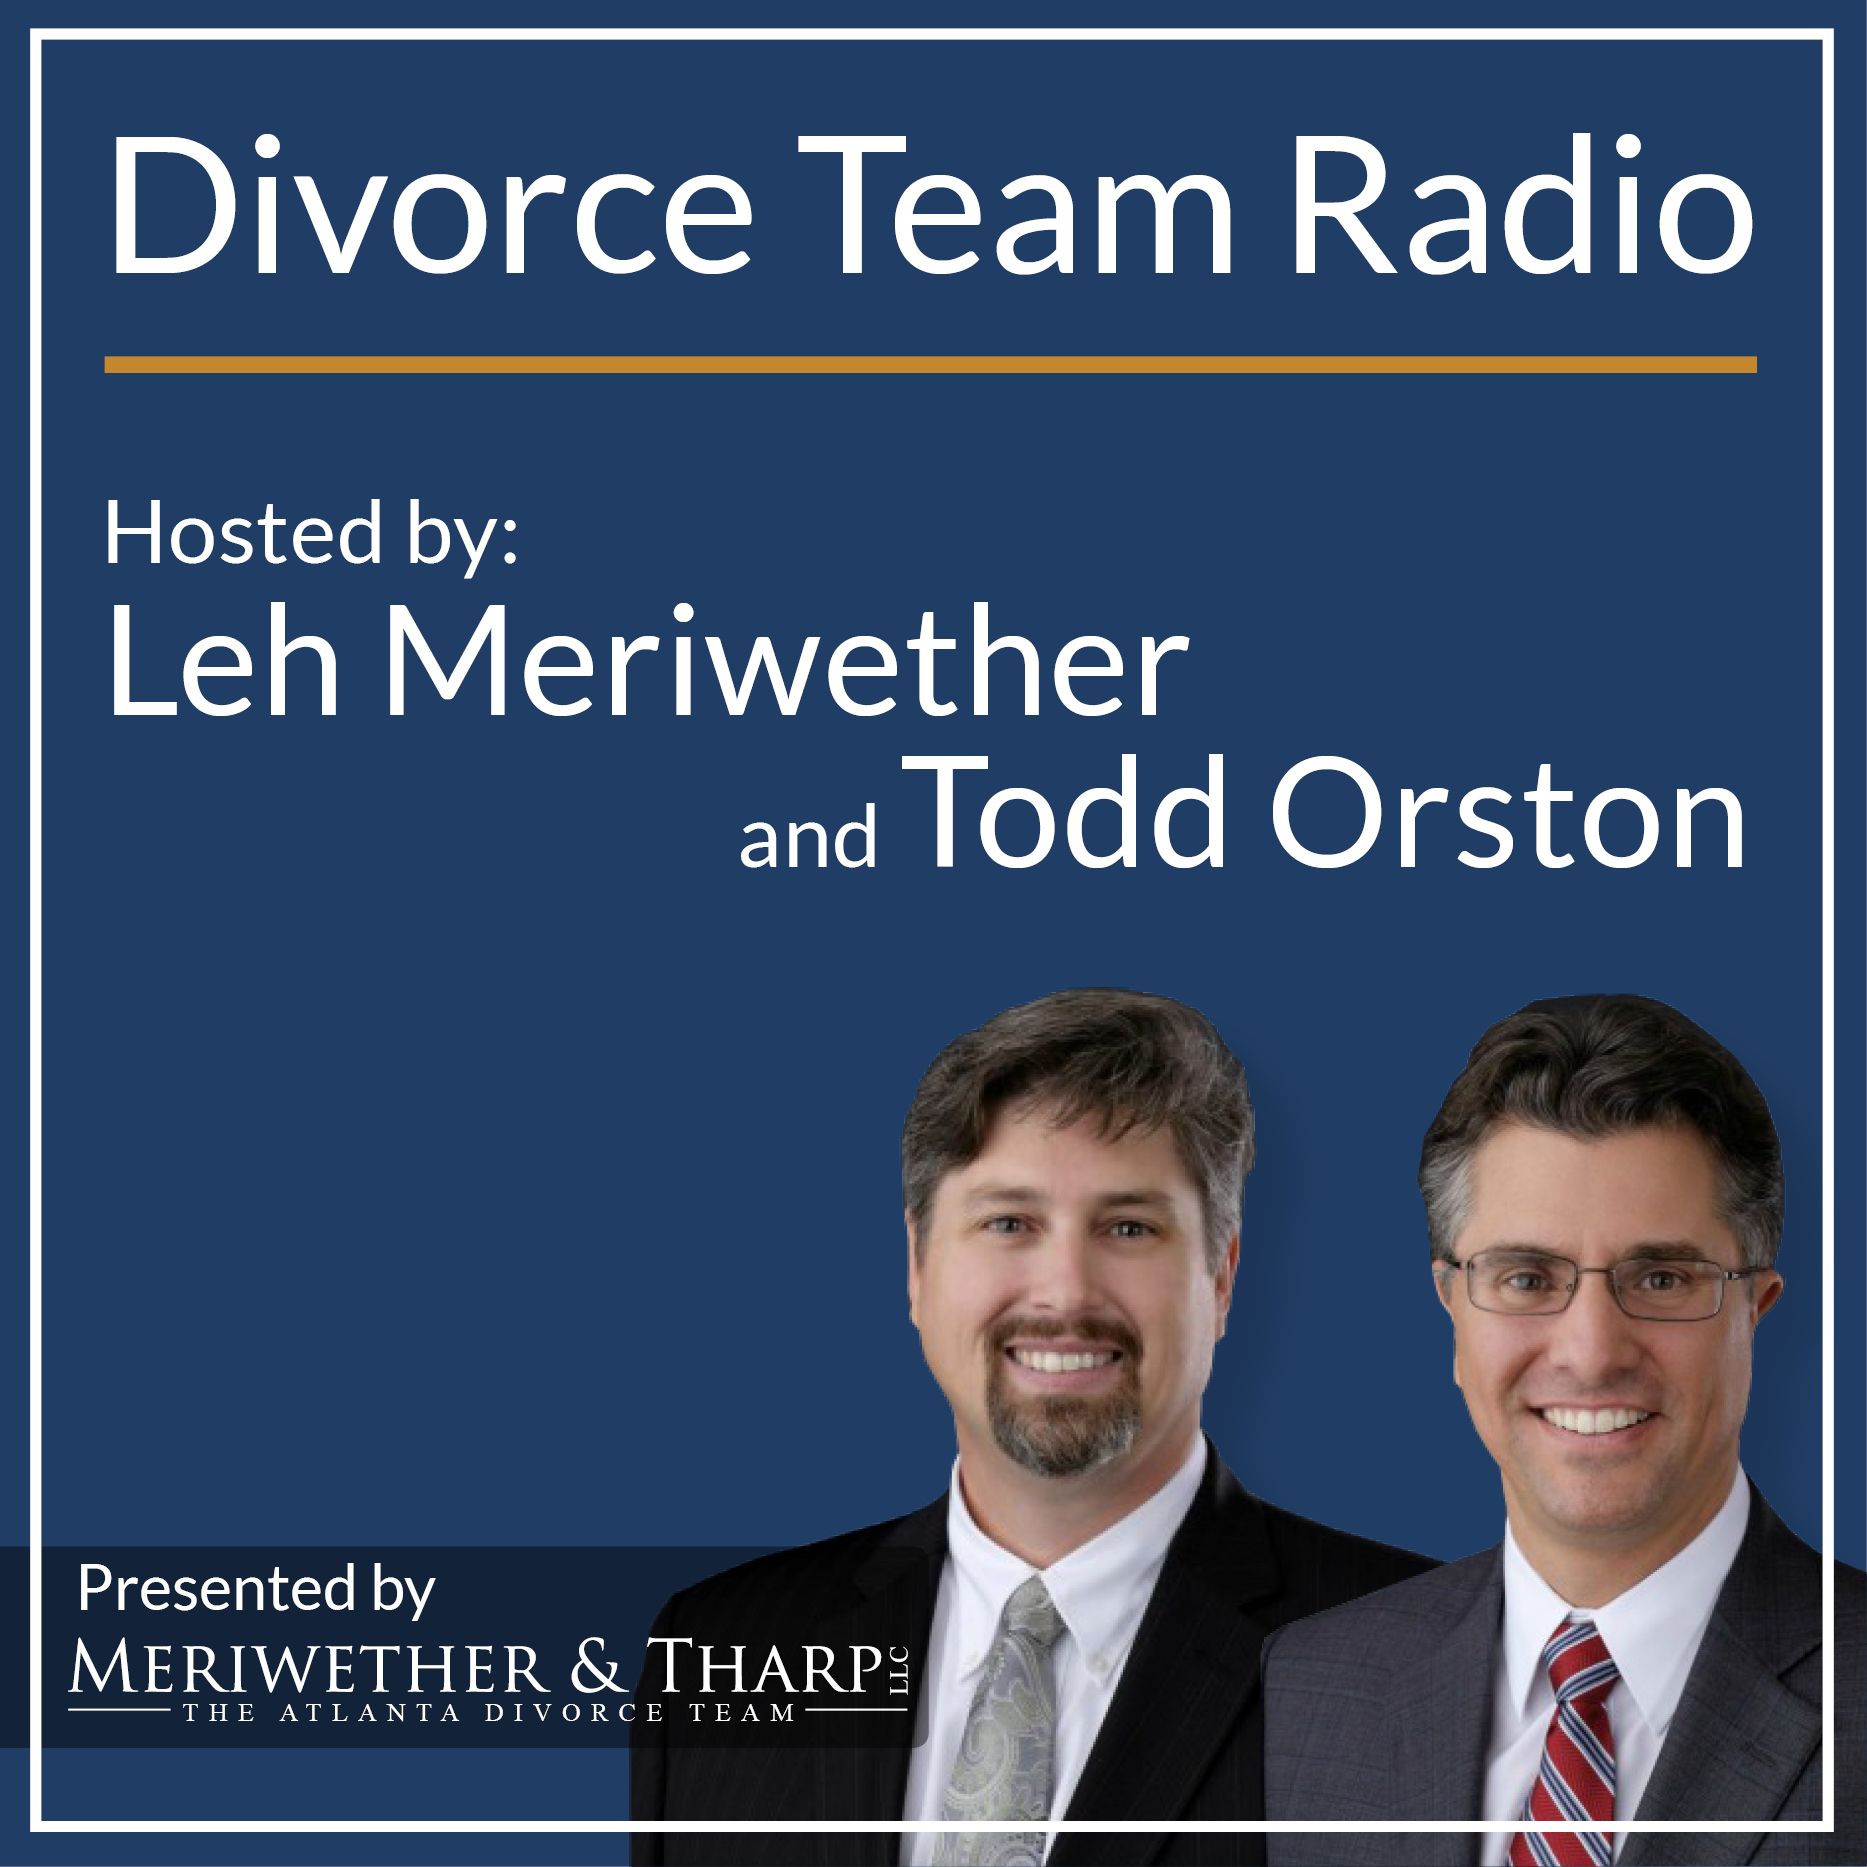 Divorce Team Radio - Your Source for Divorce and Family Law Matters show art